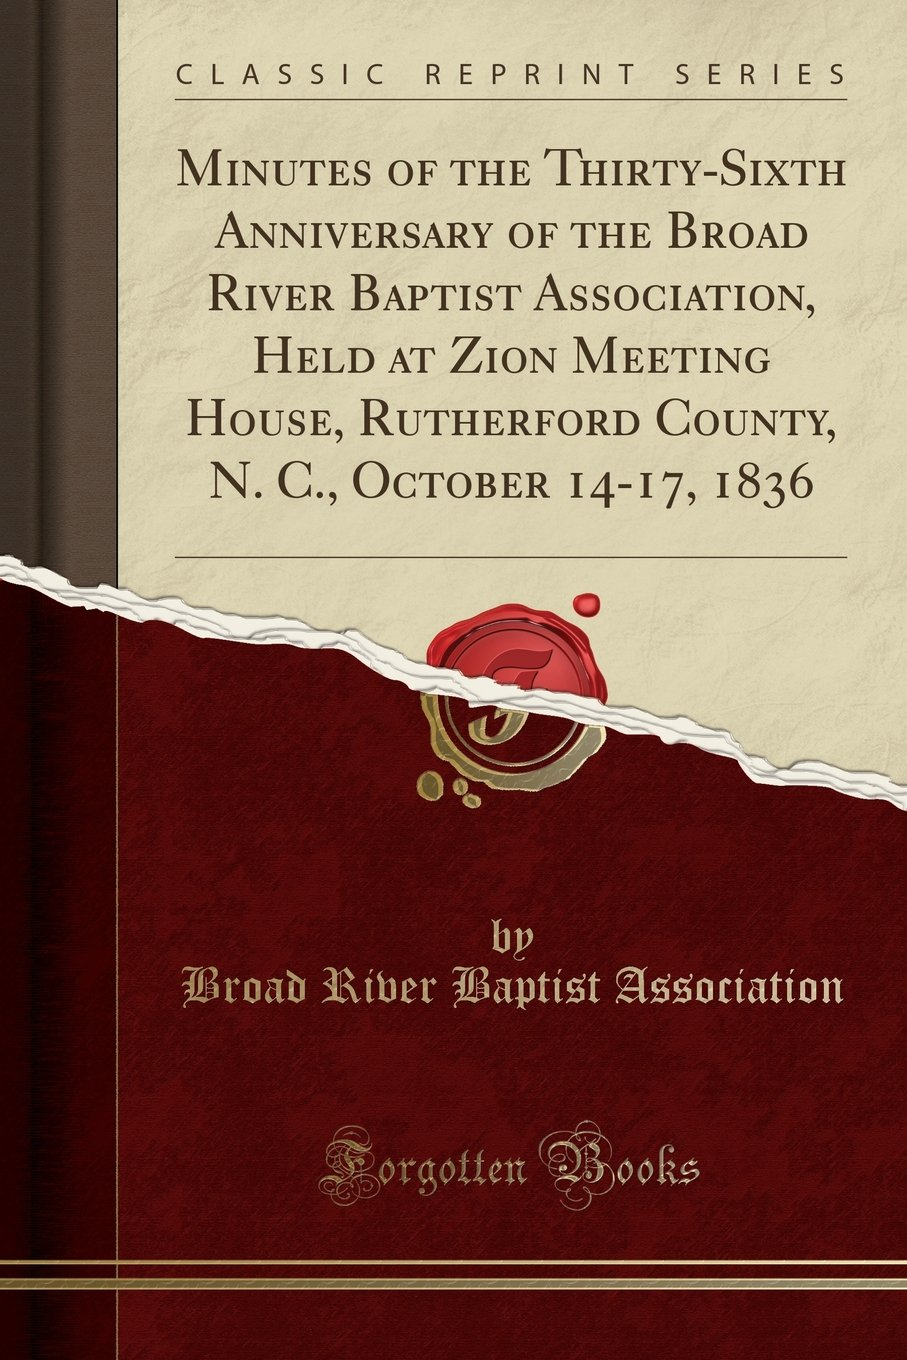 Read Online Minutes of the Thirty-Sixth Anniversary of the Broad River Baptist Association, Held at Zion Meeting House, Rutherford County, N. C., October 14-17, 1836 (Classic Reprint) ebook